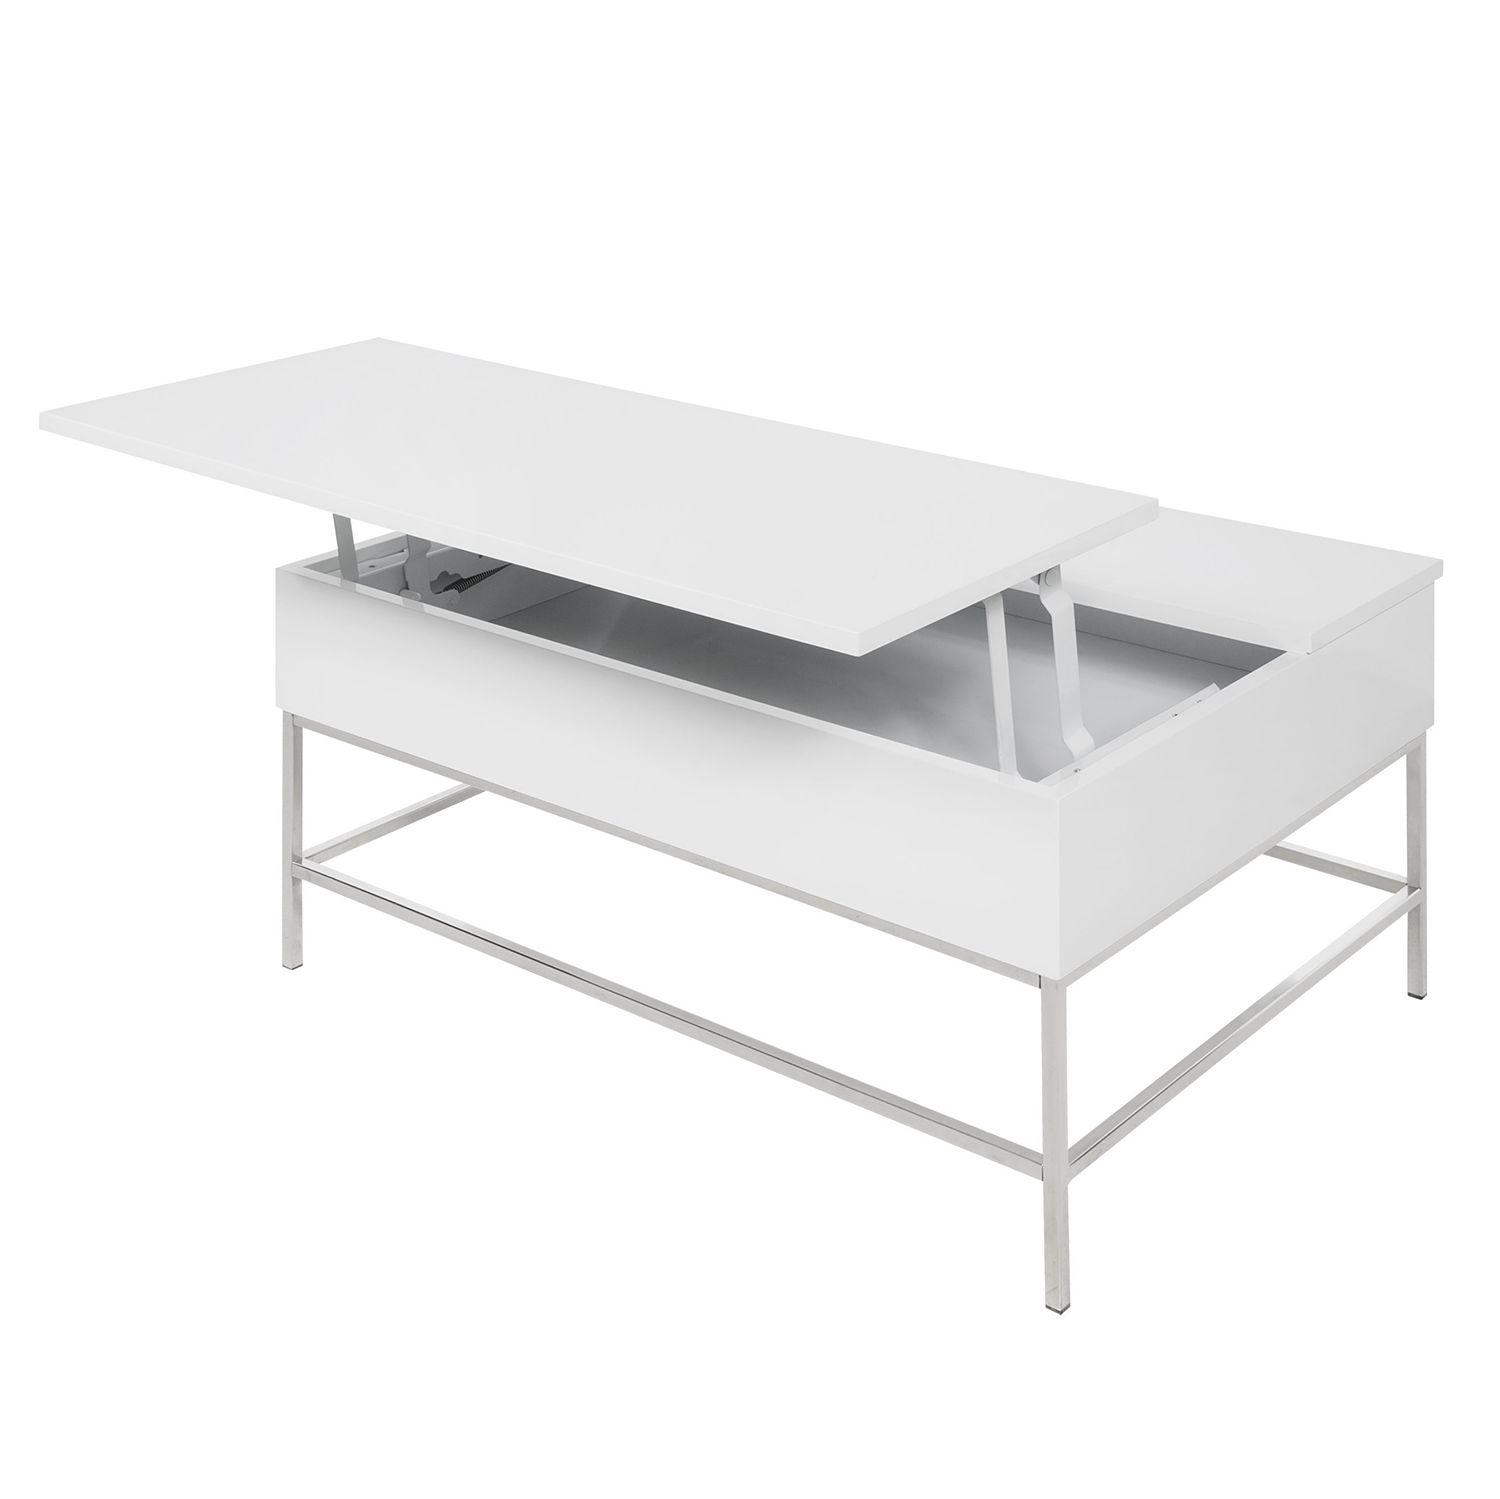 Table basse Impendo - Blanc brillant, Fredriks